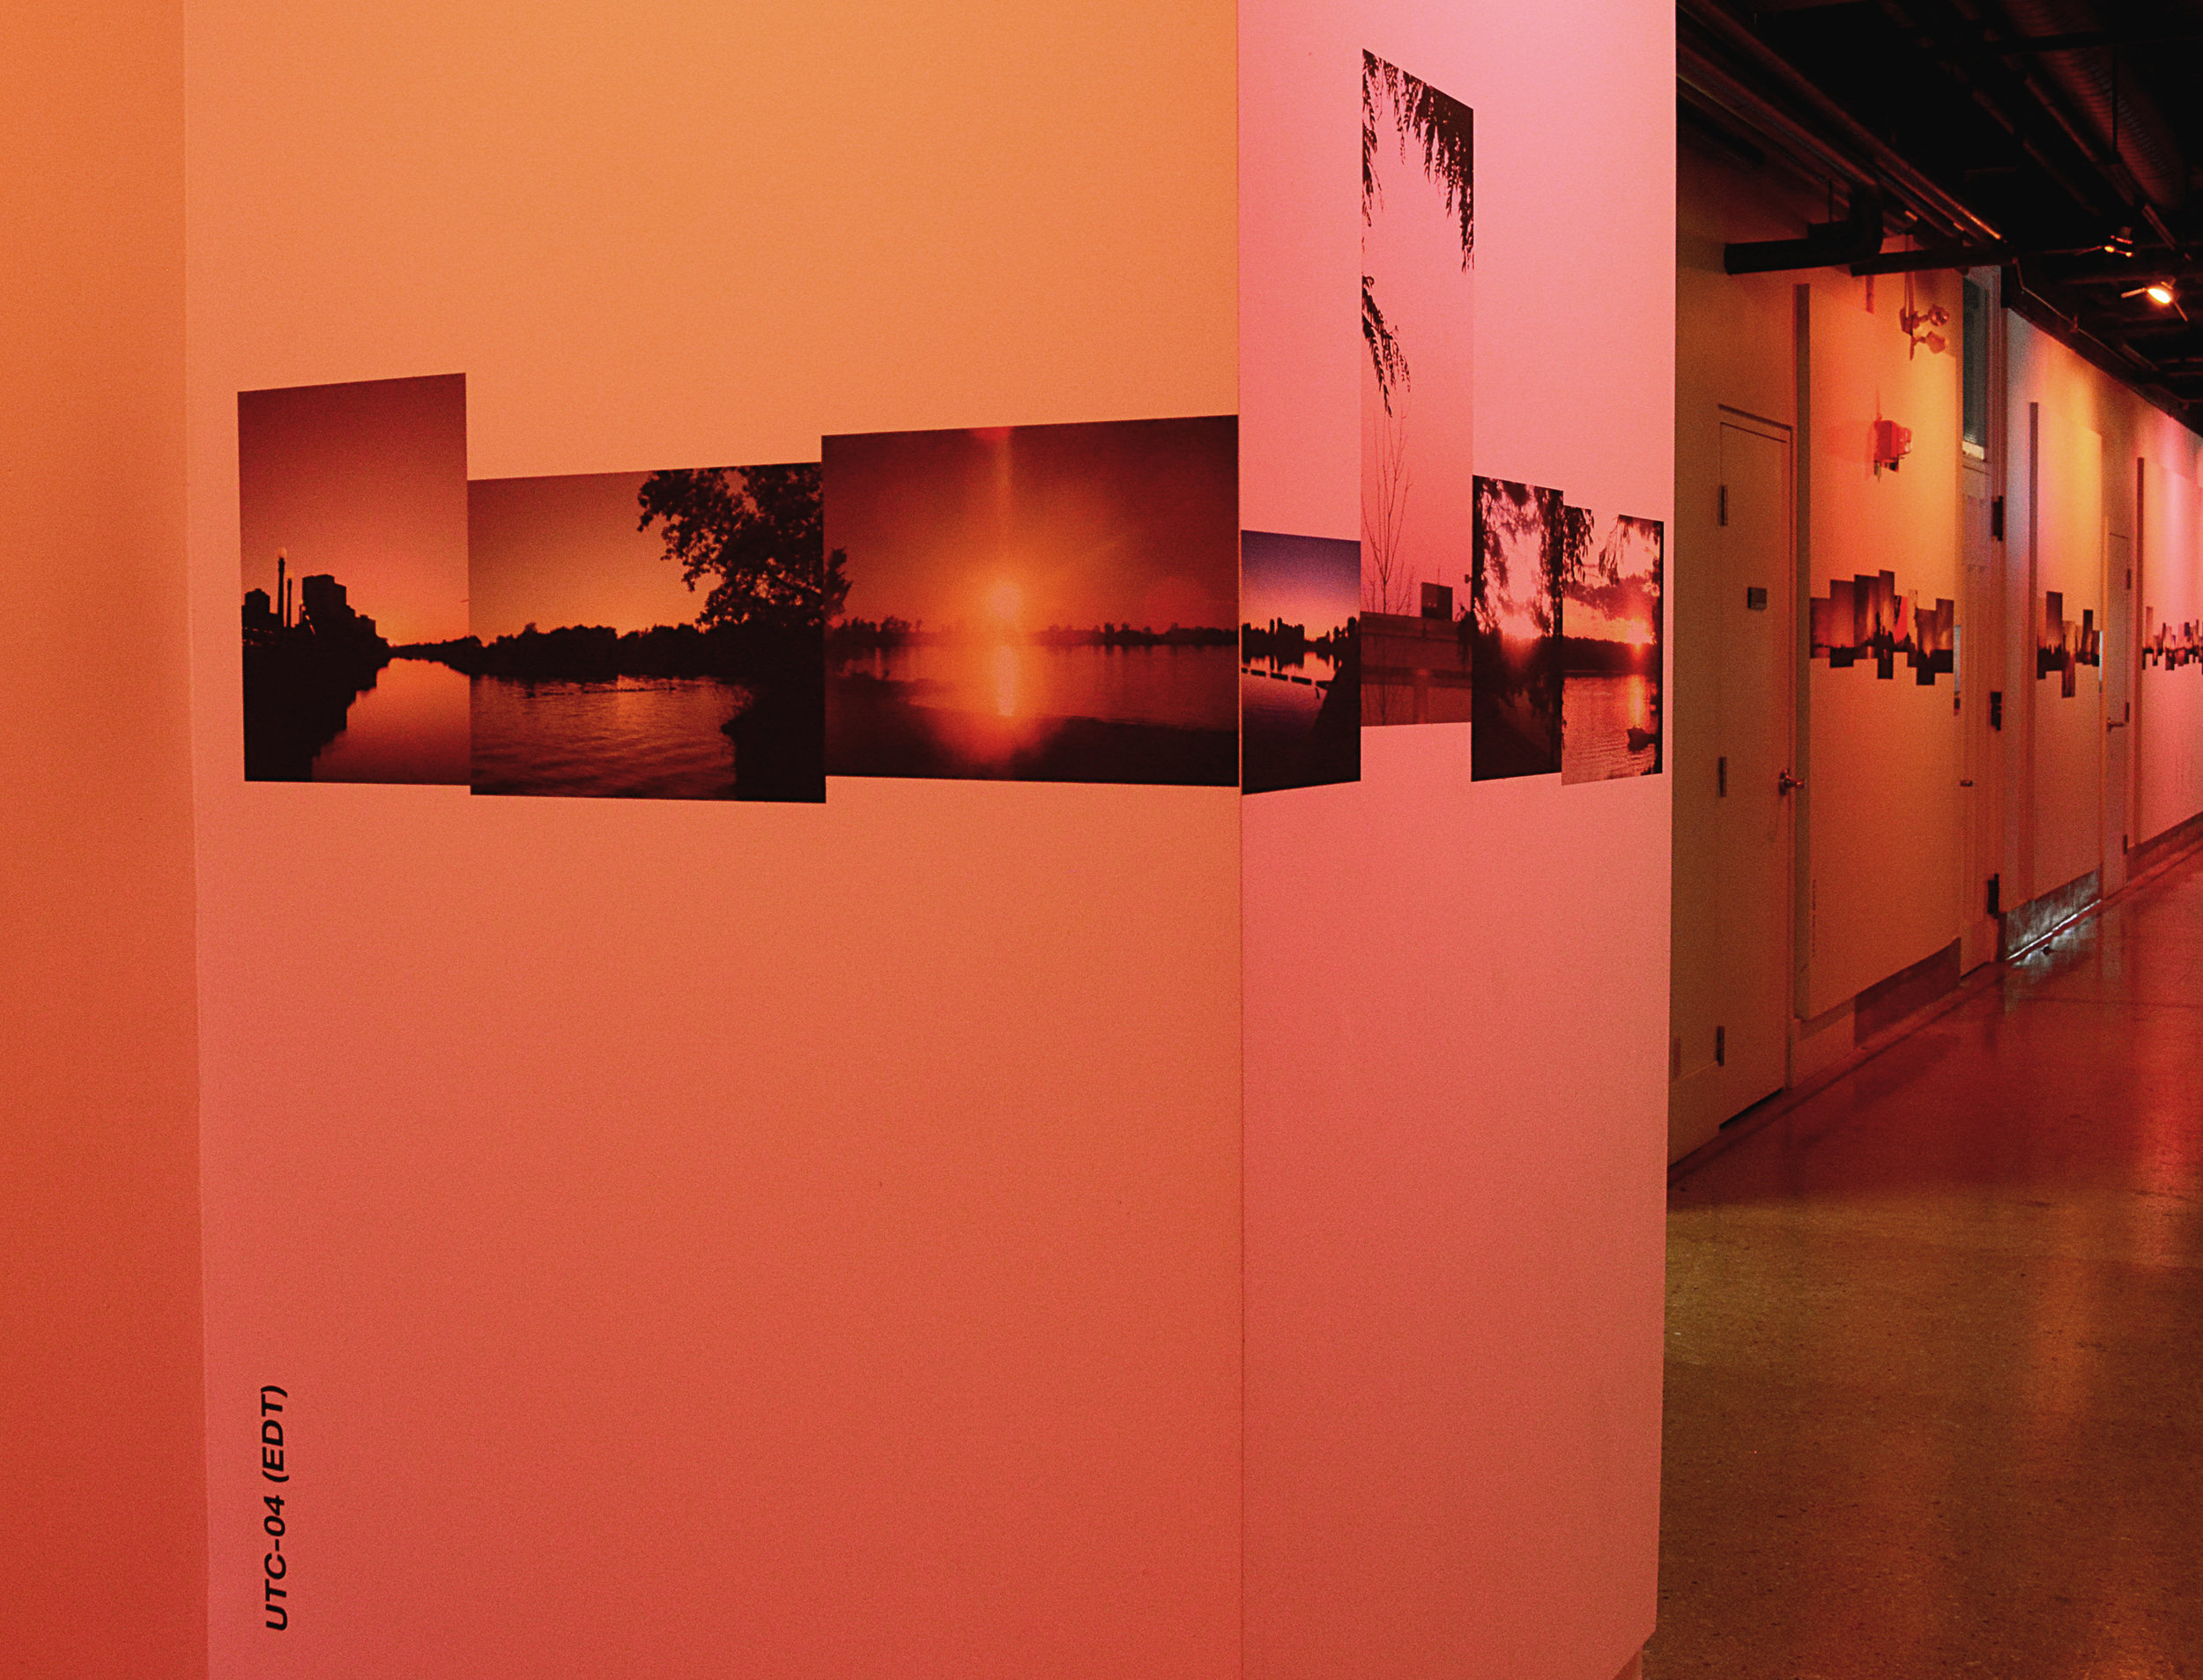 06 Set Together_photo installation_Artscape Youngplace_rural Ontario detail_editweb 01.jpg